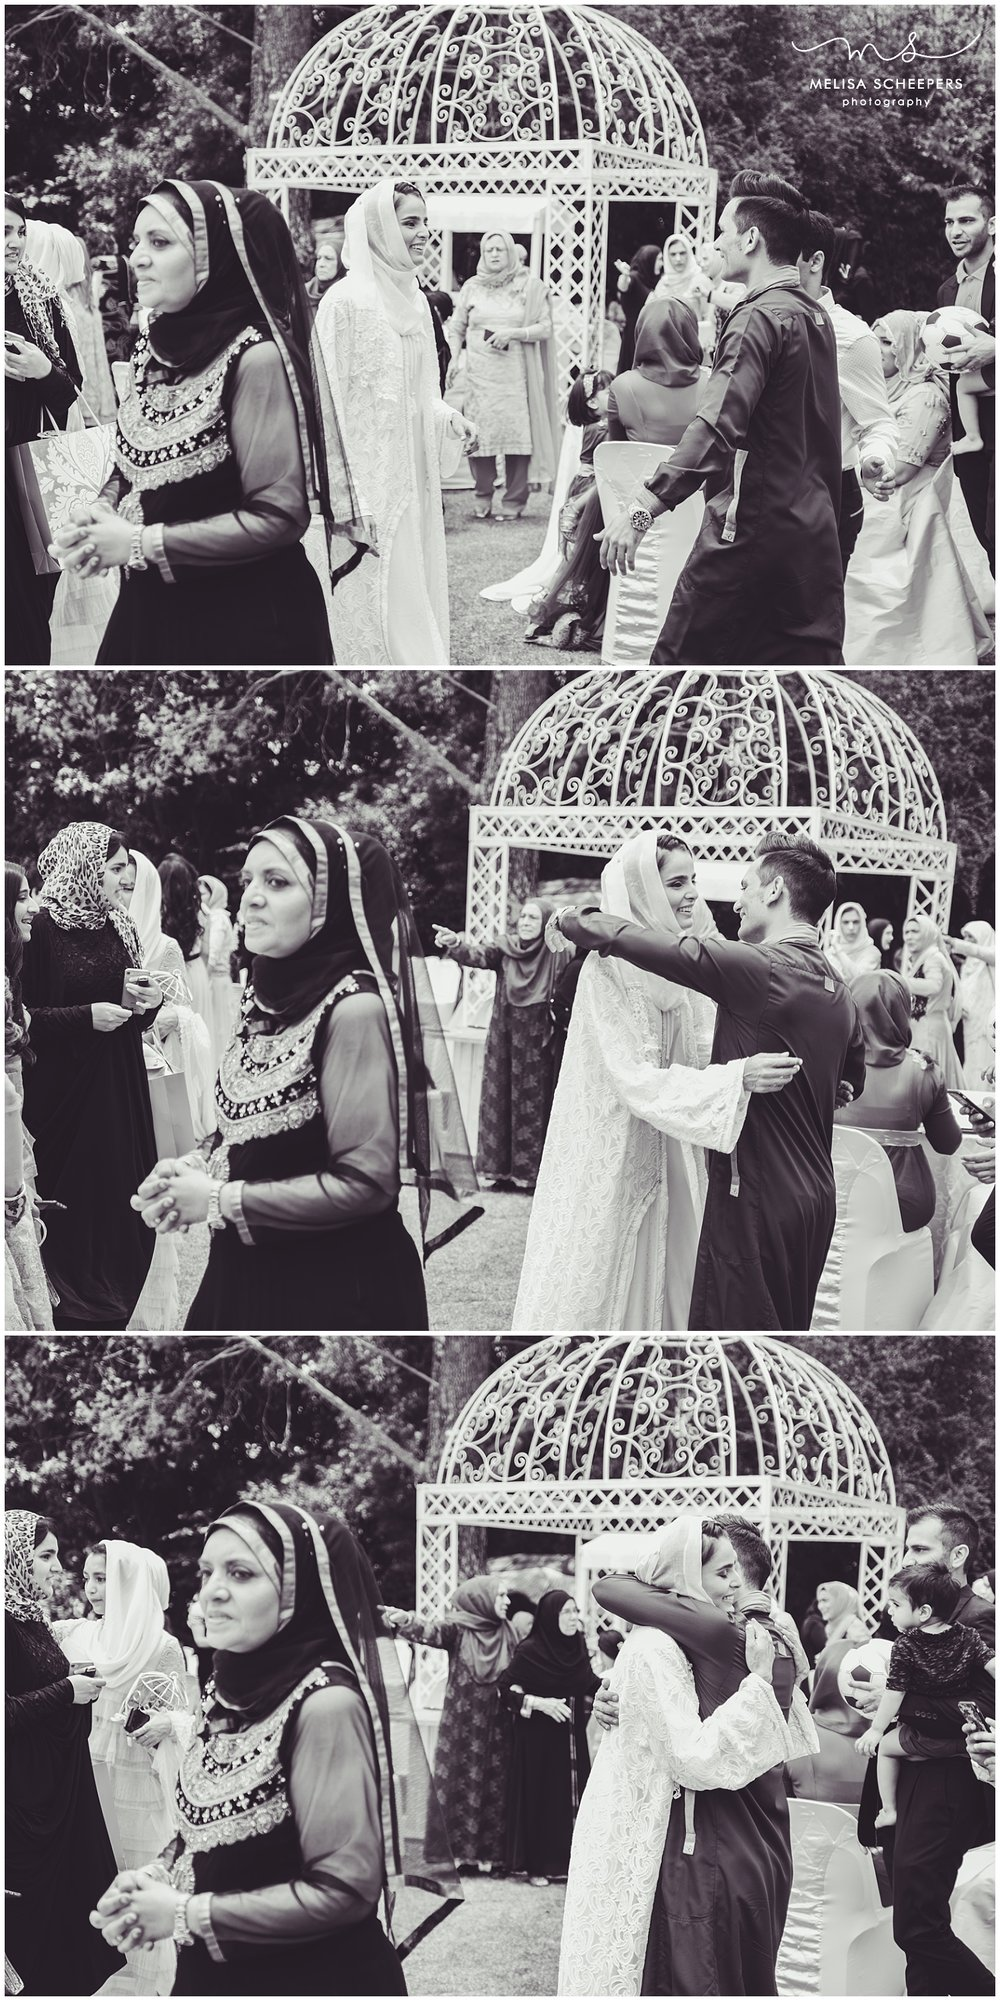 AFTER THE NIKKAH THE COUPLE SAW EACH OTHER FOR THE FIRST TIME